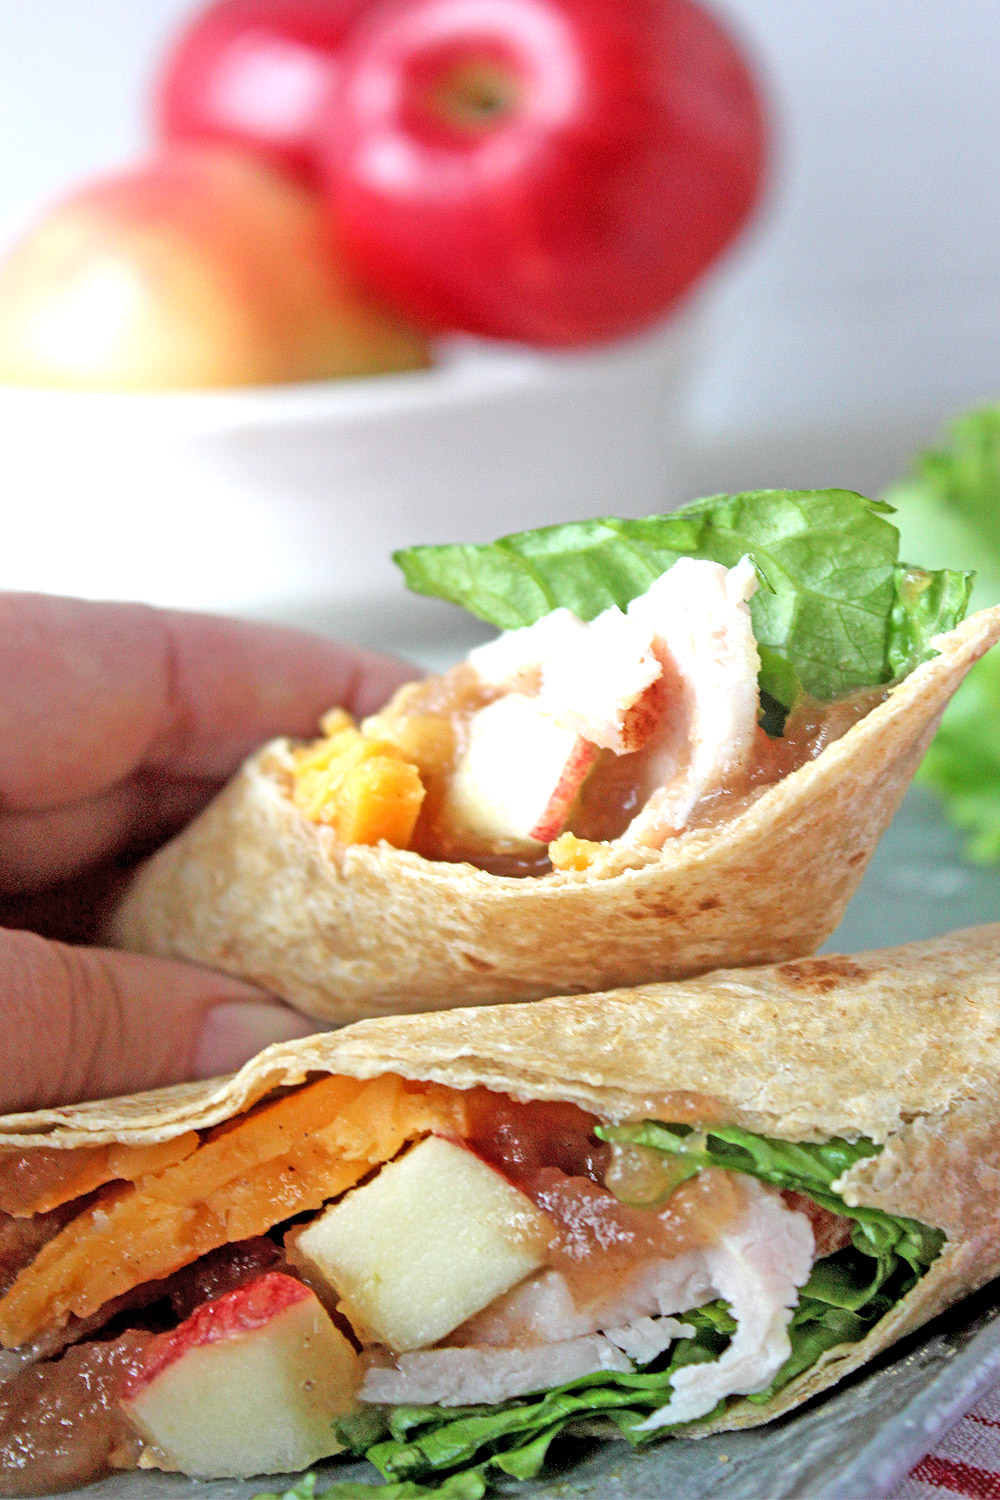 Grab our turkey wrap recipe and make one for yourself!